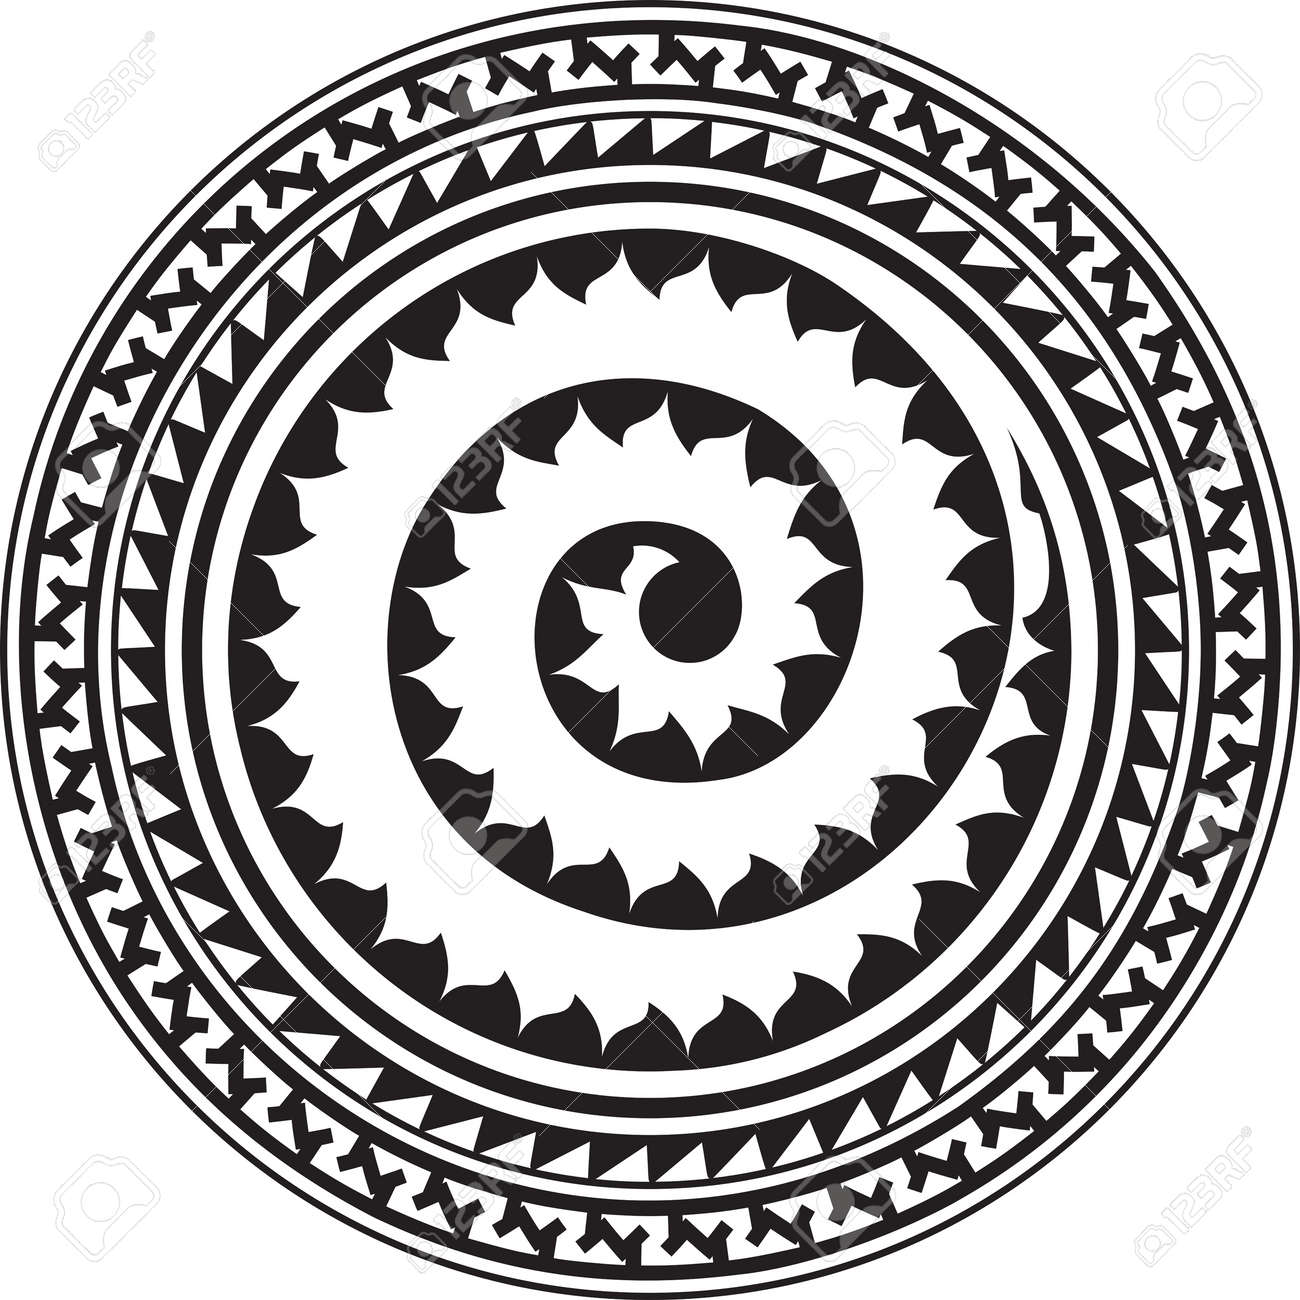 tribal tattoo circular vector art royalty free cliparts vectors rh 123rf com Celtic Tribal Tattoos for Women circular tribal tattoo designs